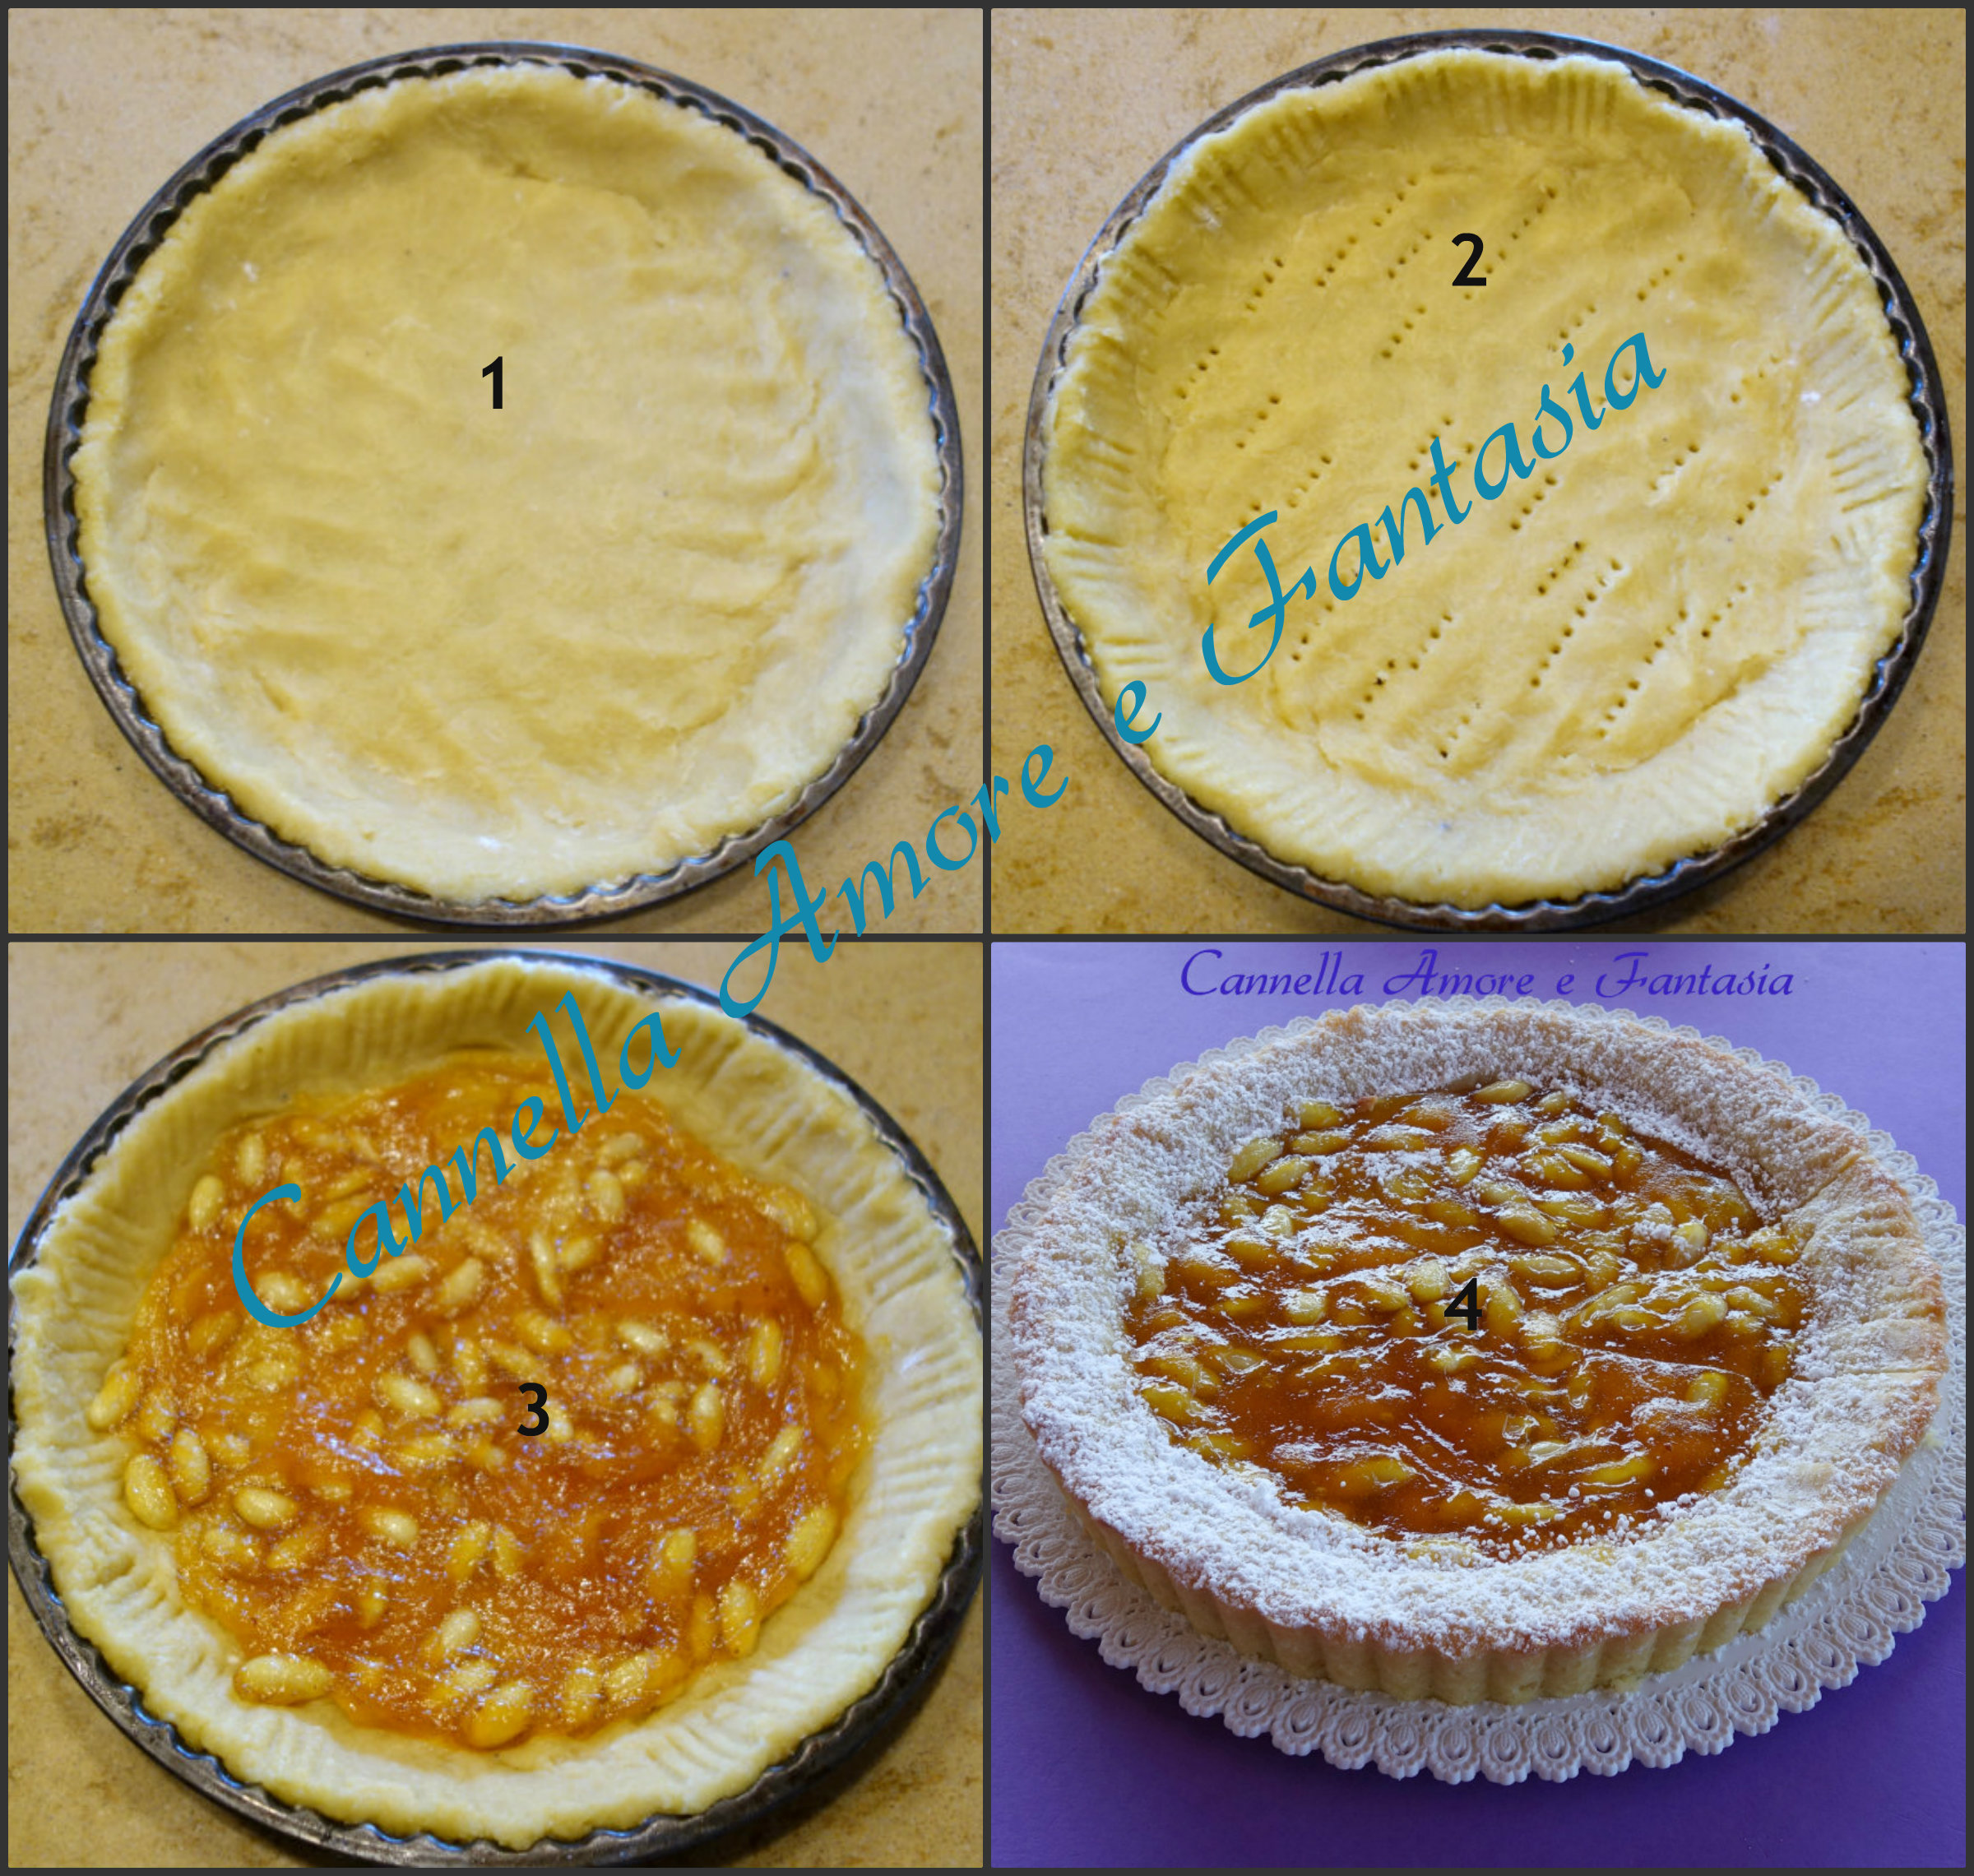 crostata di mandorle e marmellata di fichi d'india collage finito